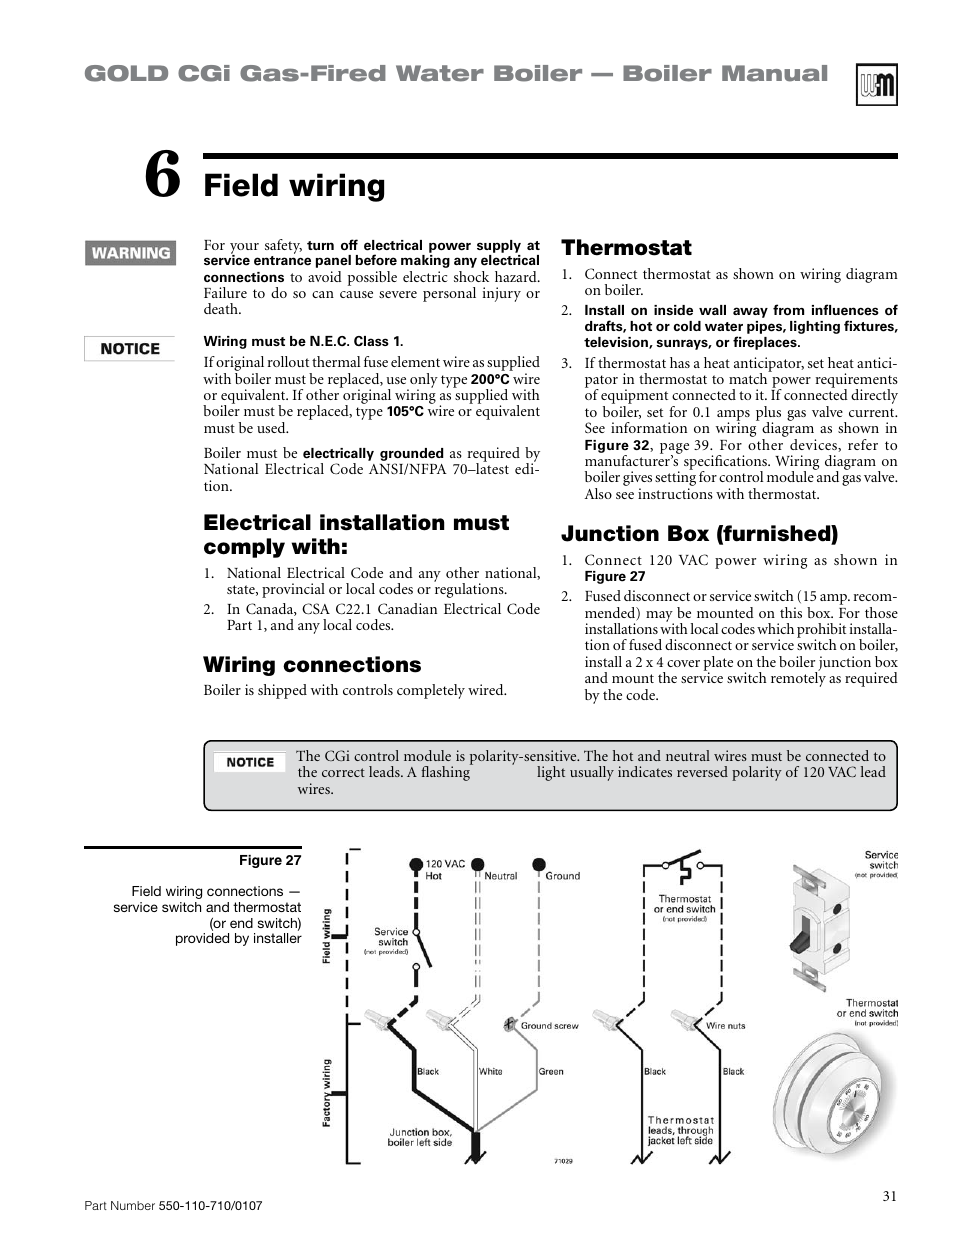 Weil Mclain Cgi Boiler Wiring Diagram Schematics And Diagrams Field Gold Gas Fired Water Manual